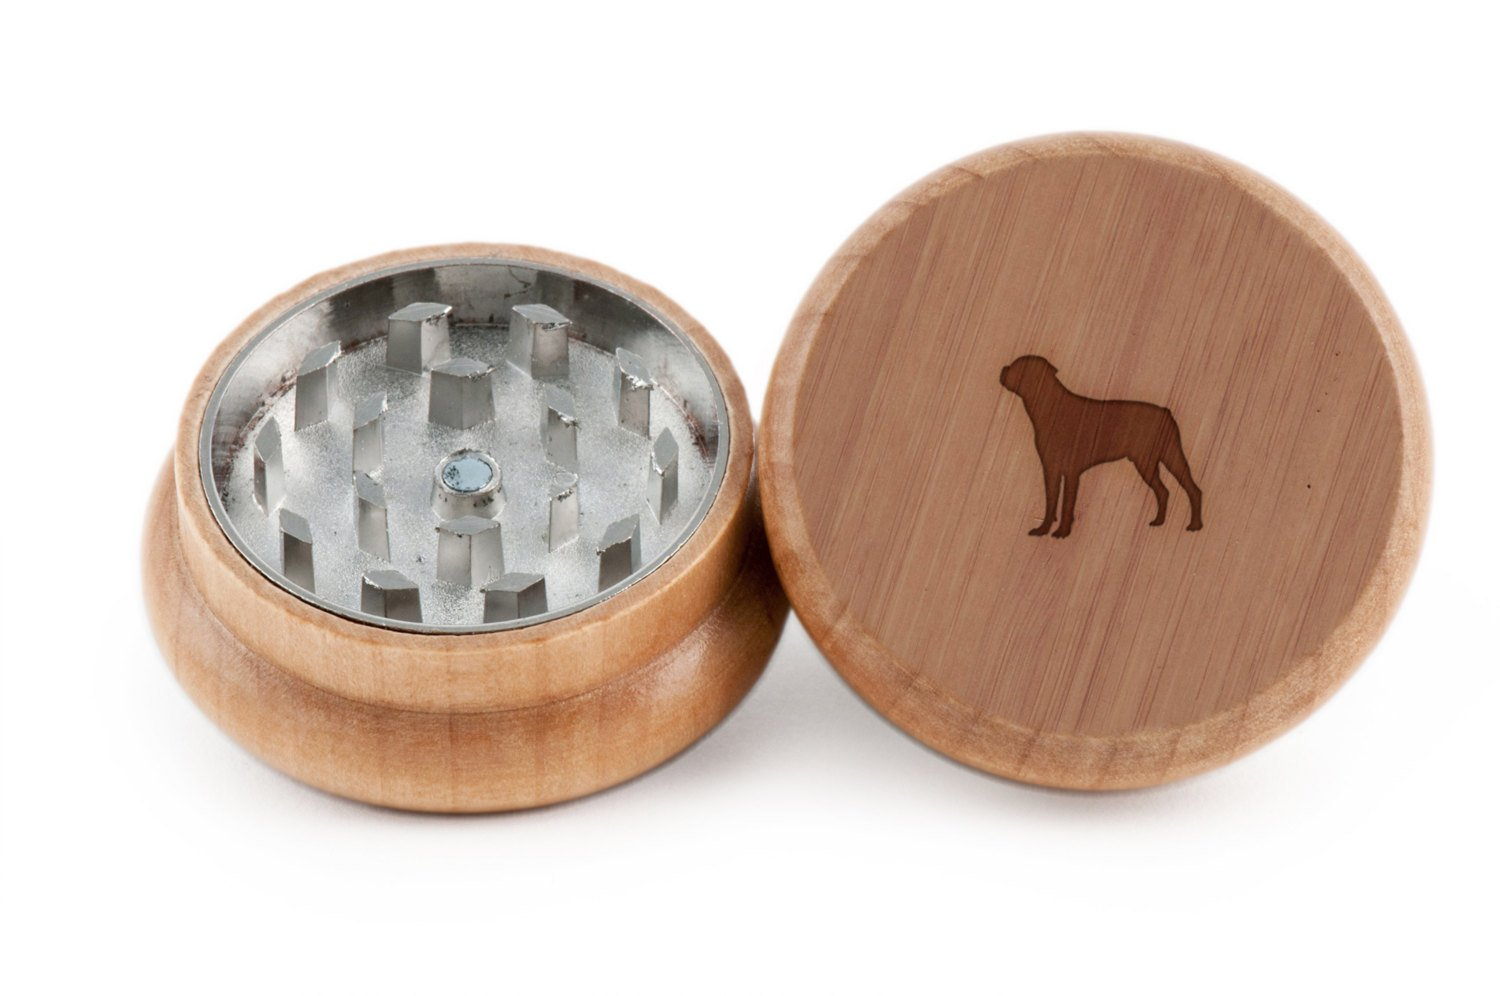 GRINDCANDY Spice And Herb Grinder - Laser Etched Rottweiler Design - Manual Oak Pepper Grinder